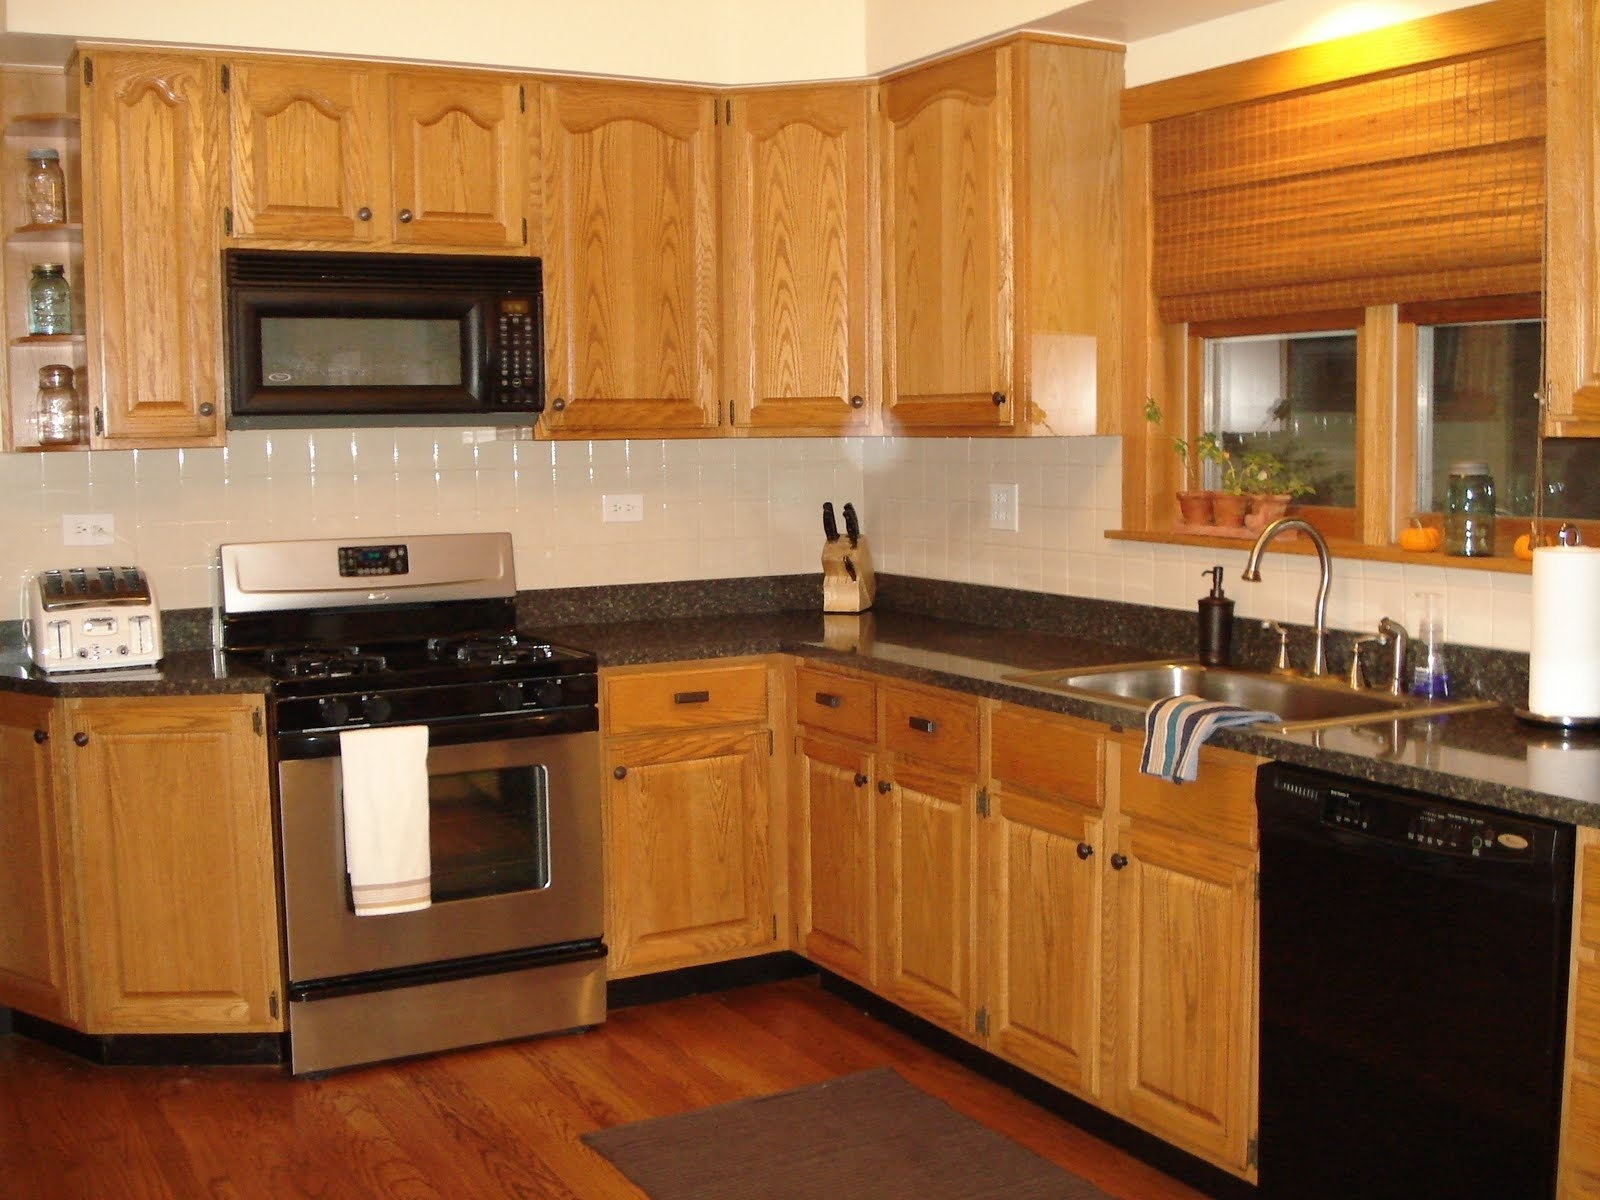 Kitchen Decorating With Oak Cabinets